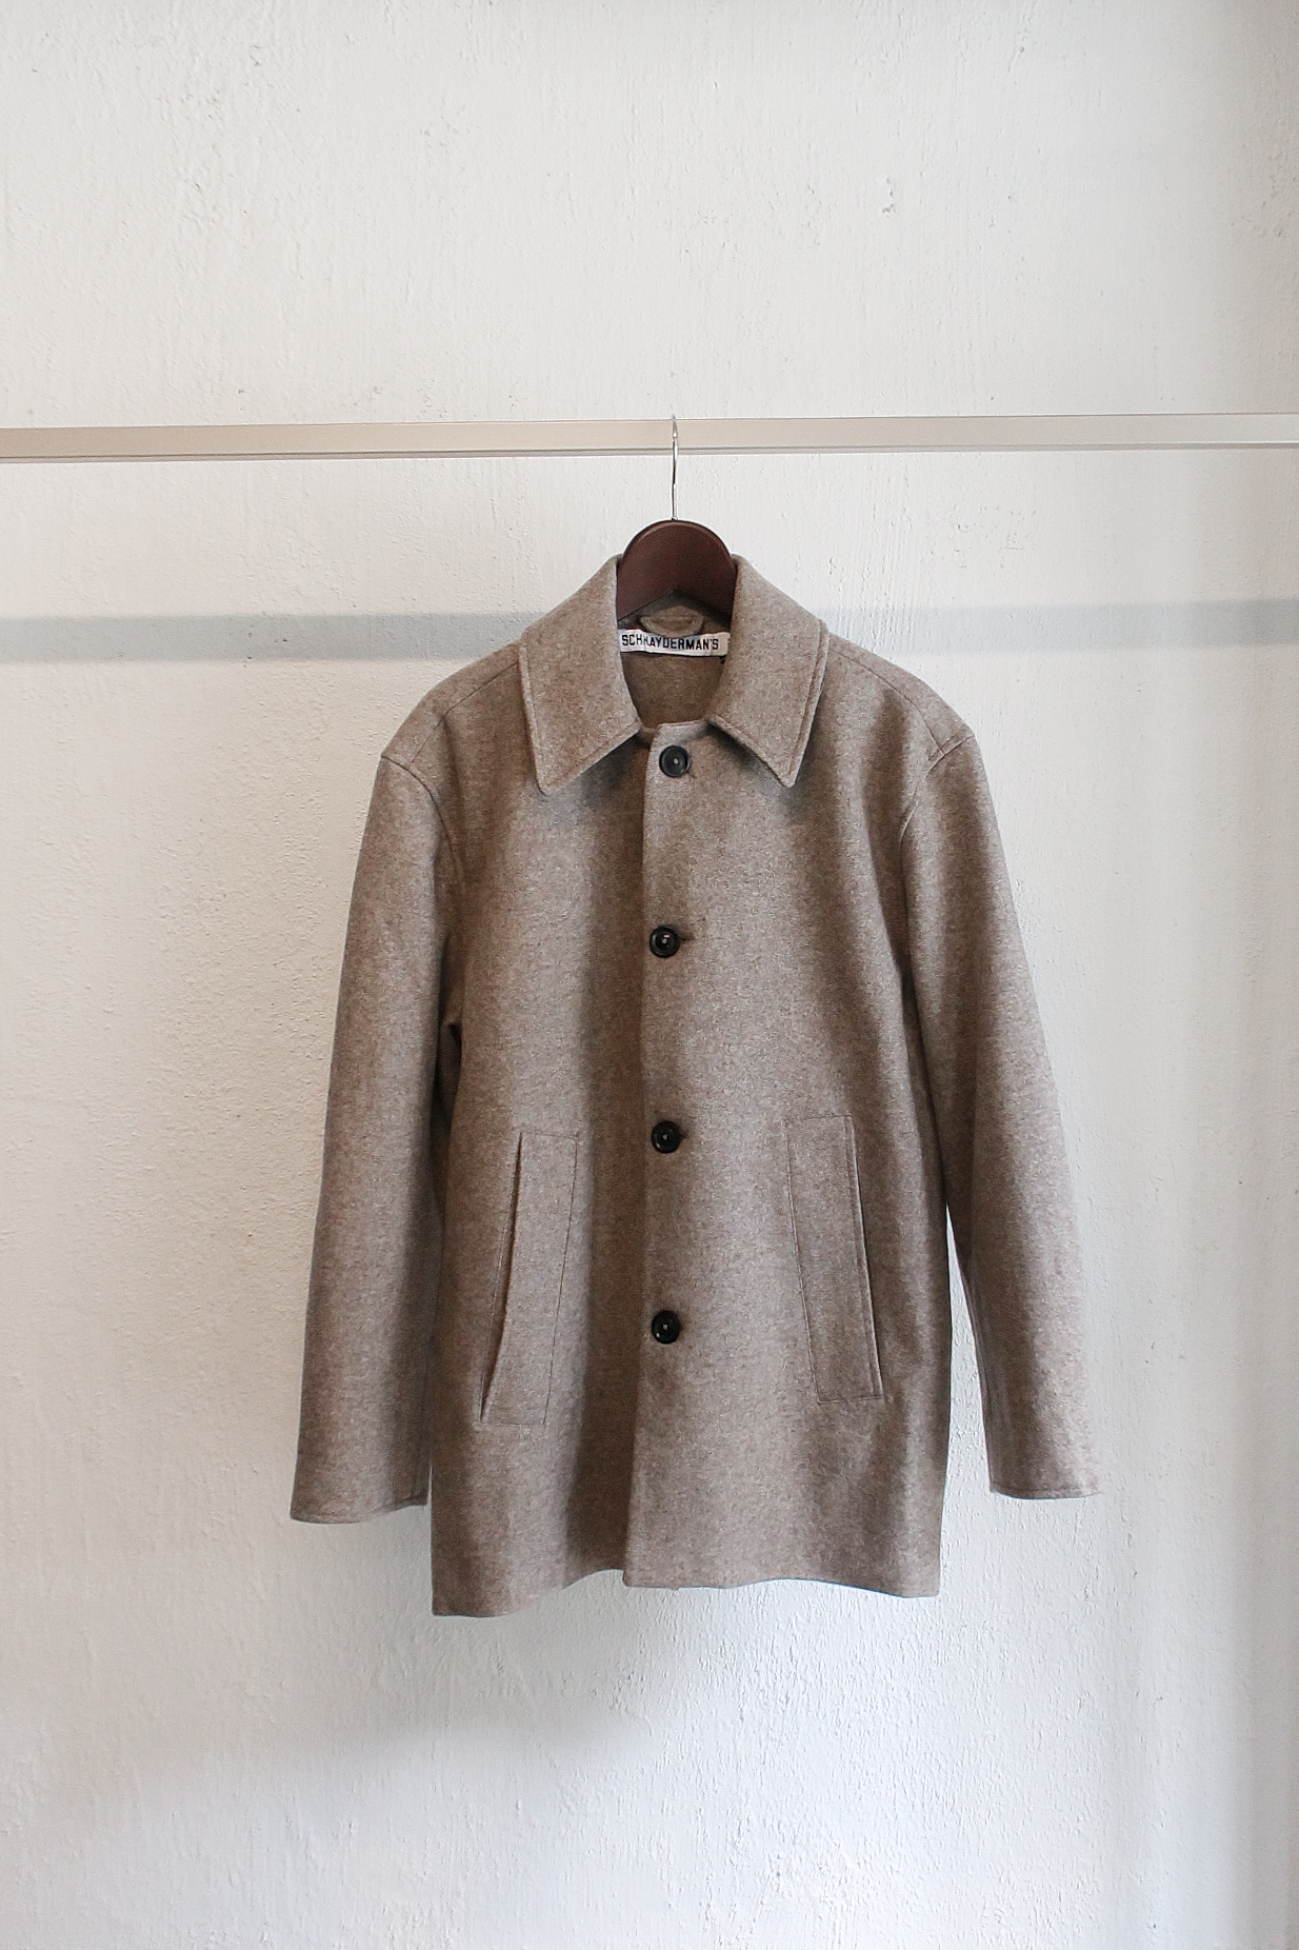 [SCHNAYDERMAN'S] Jacket Melton Wool - Dark Beige Melange